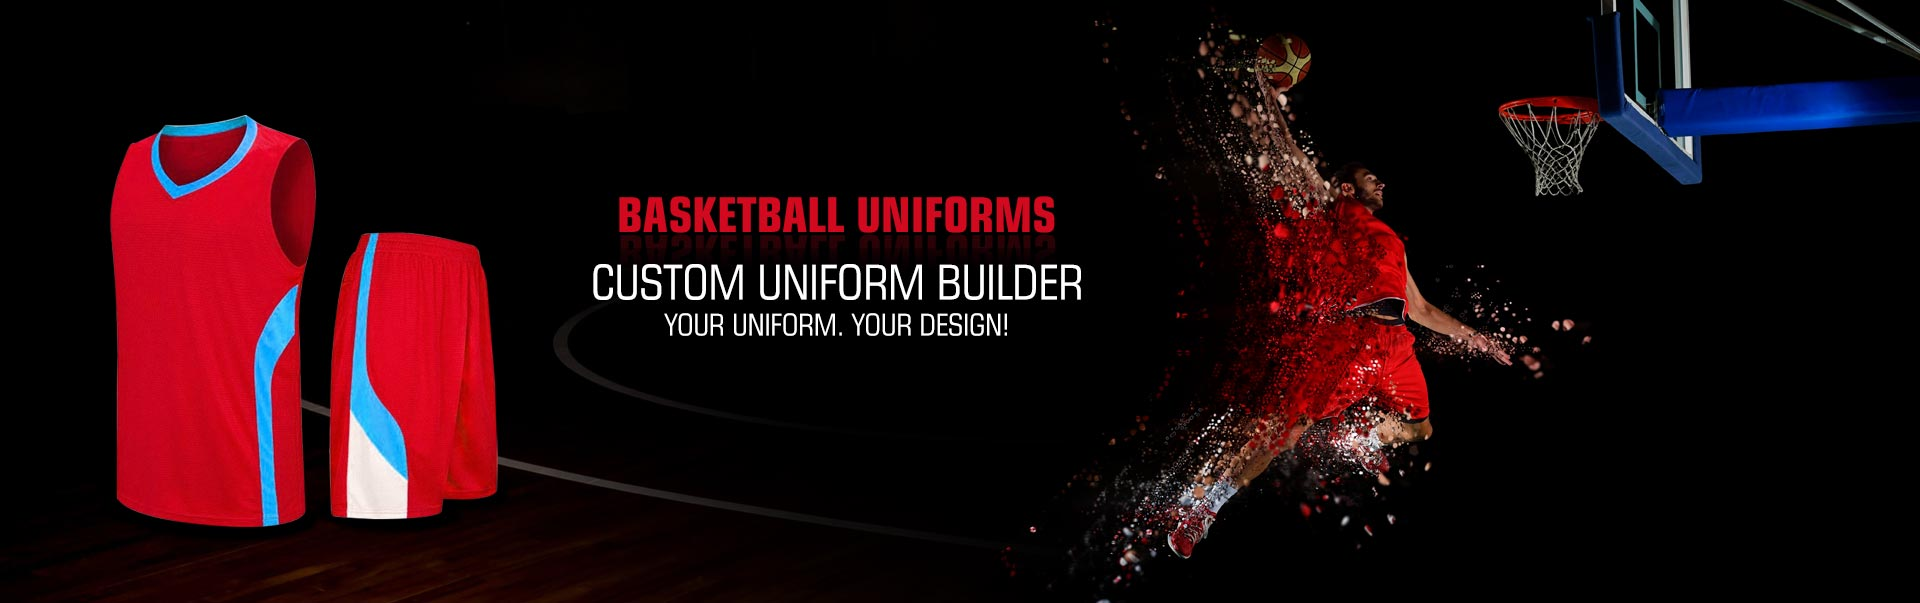 Basketball Uniforms Wholesaler, Suppliers in Columbia